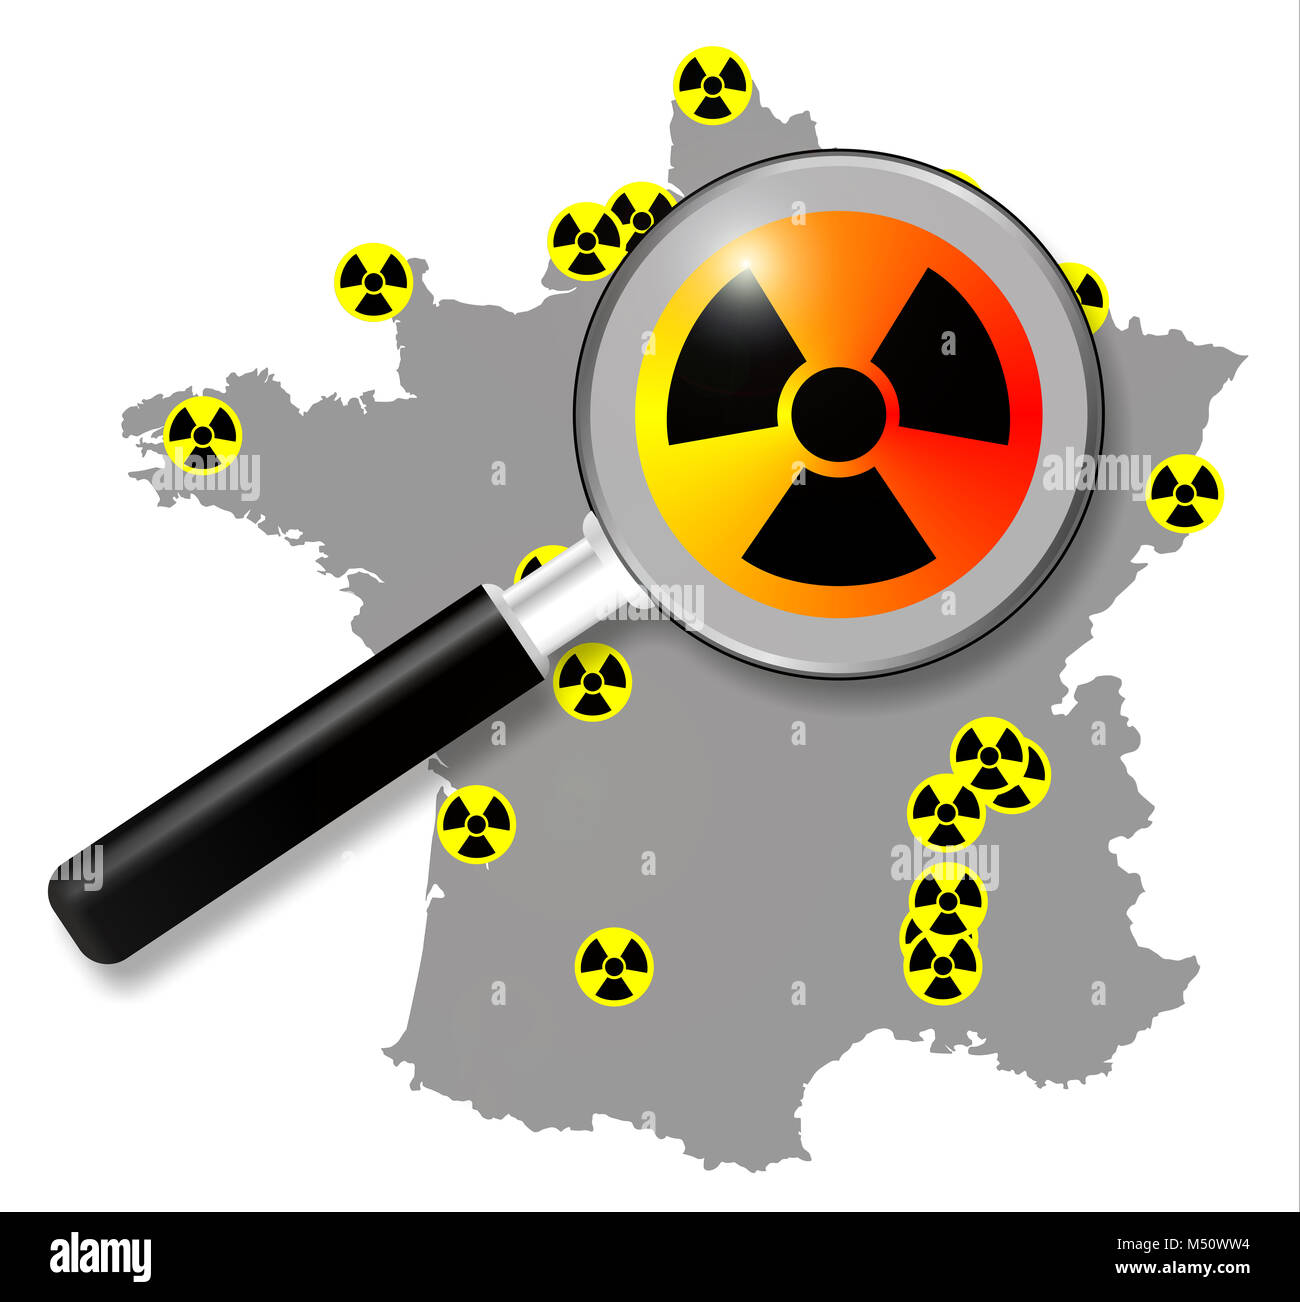 Focus on French nuclear power stations - Stock Image